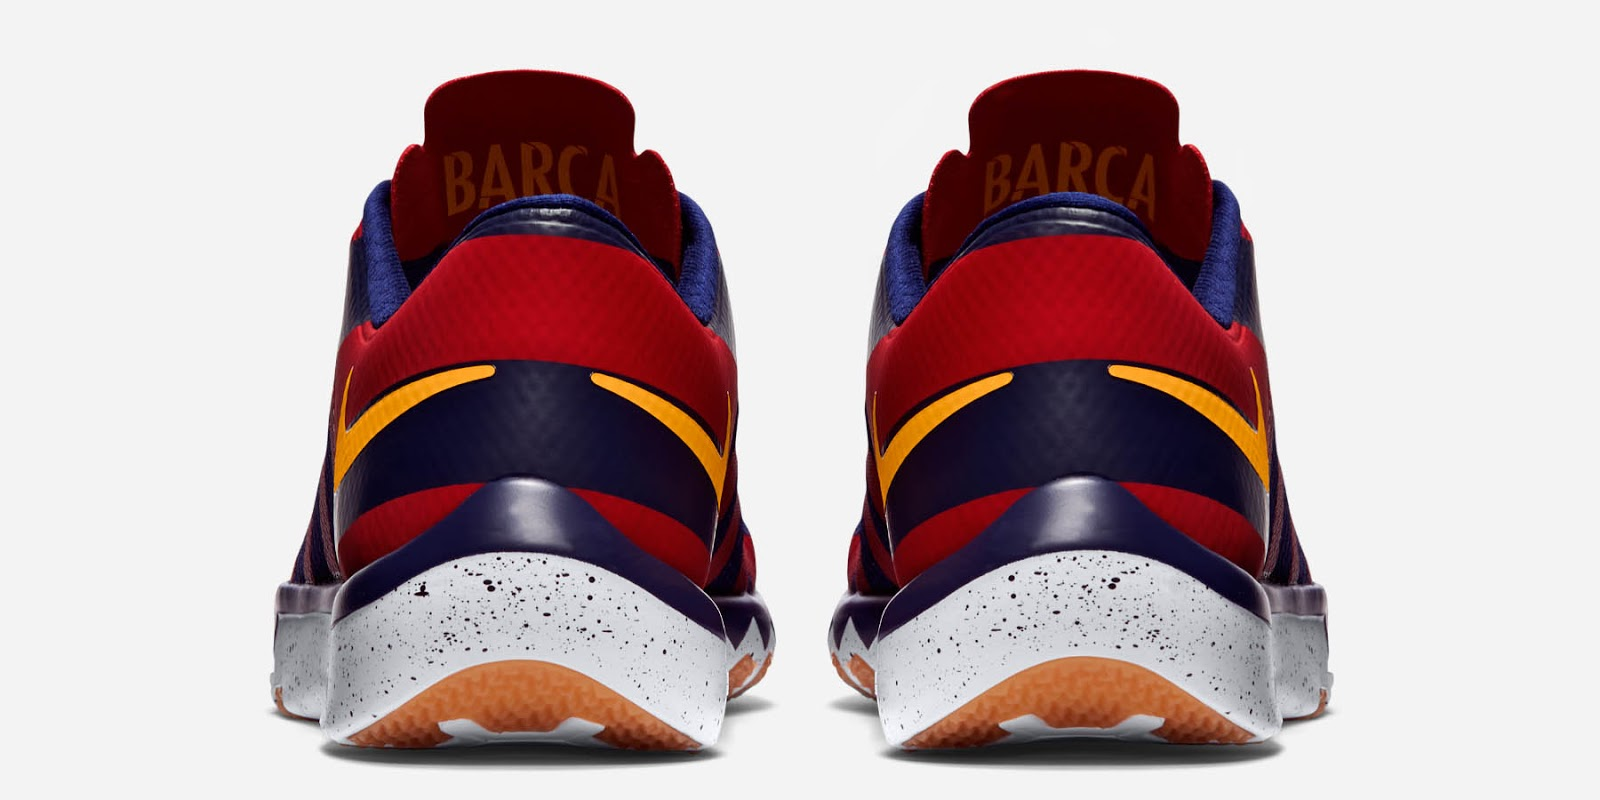 ... Nike Free Trainer FC Barcelona Shoes Revealed . ... 3d3cde793d5